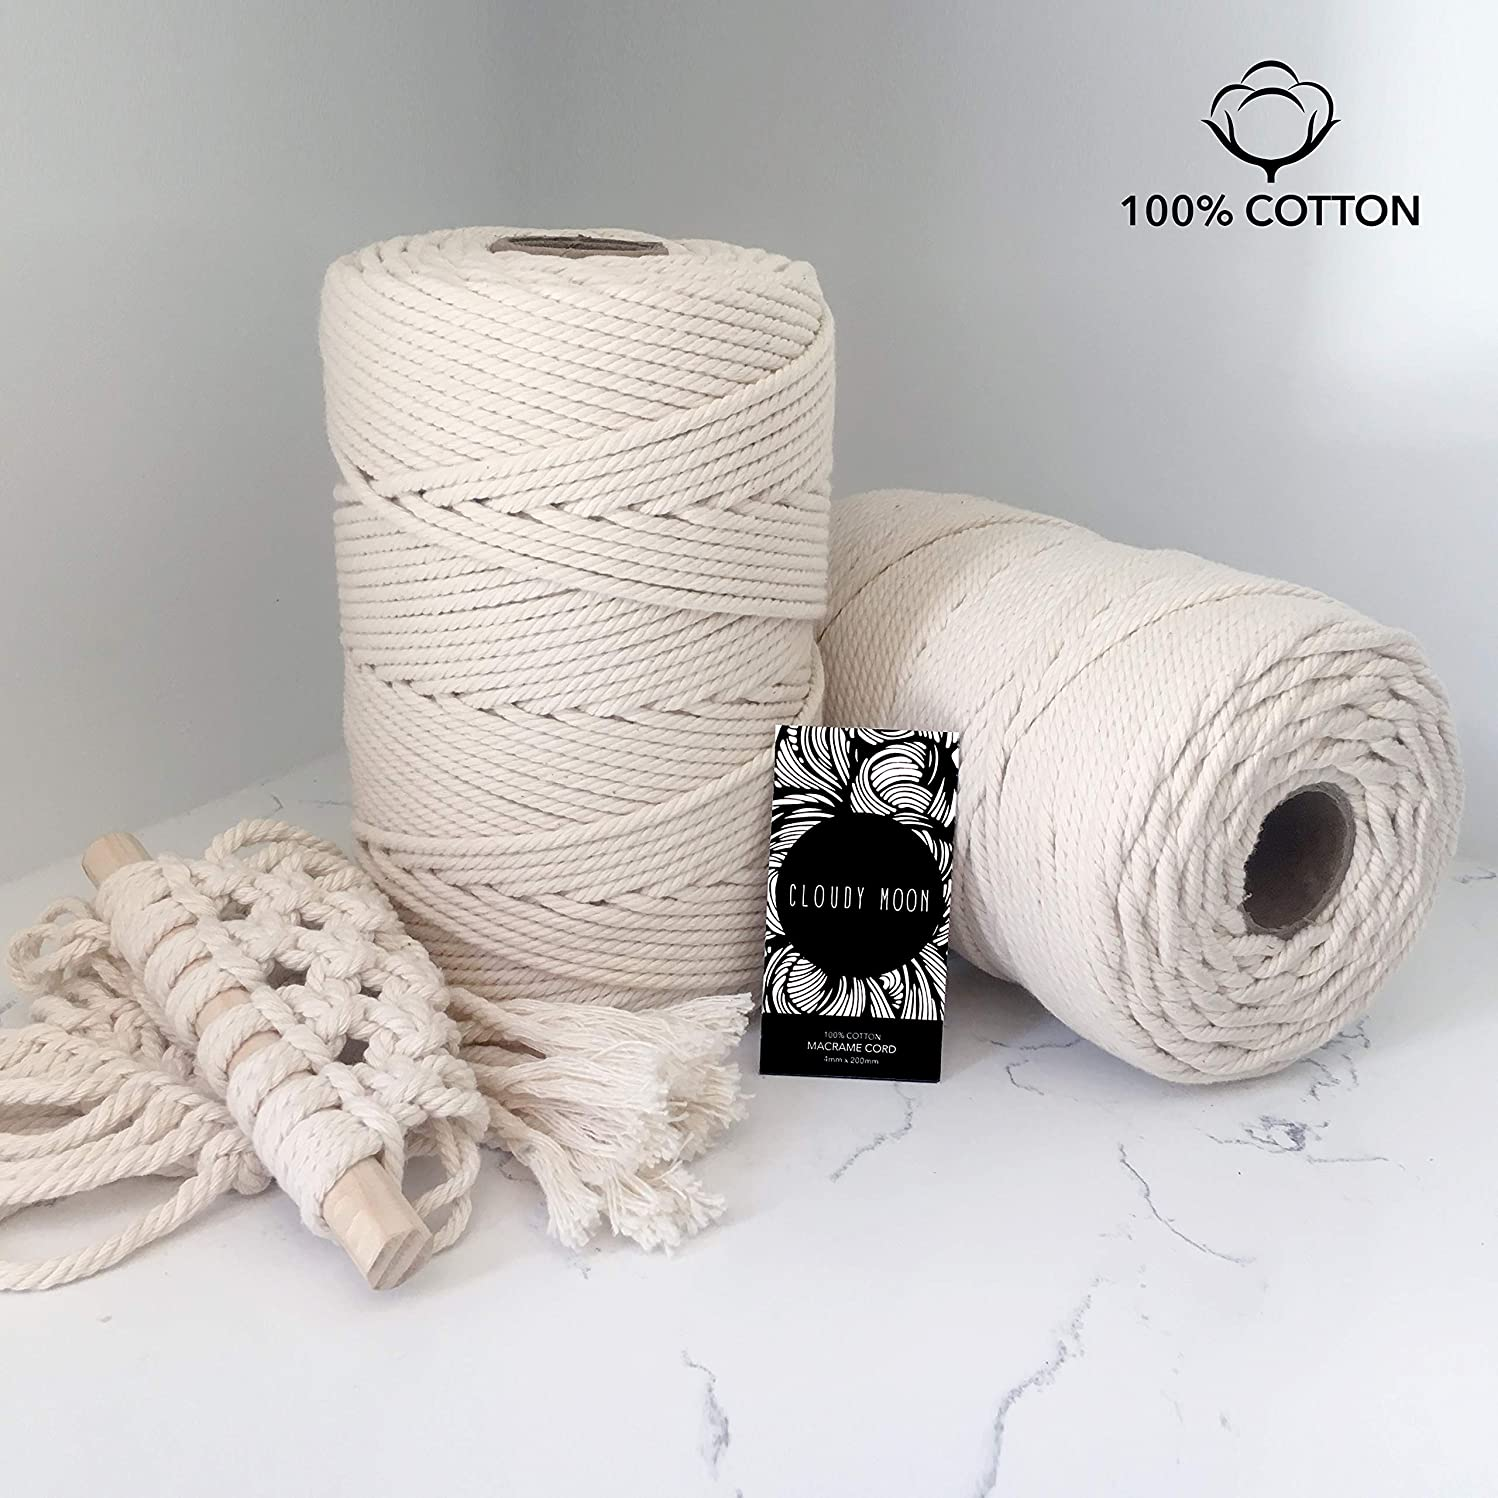 CLOUDY MOON Macramé Cord | 4mm x 100m/109yd 100% Natural UNDYED Cotton. 4 Strand Twisted Rope Perfect for Handmade Wall Hanging, Plant Hangers, Table Runners and More Crafts